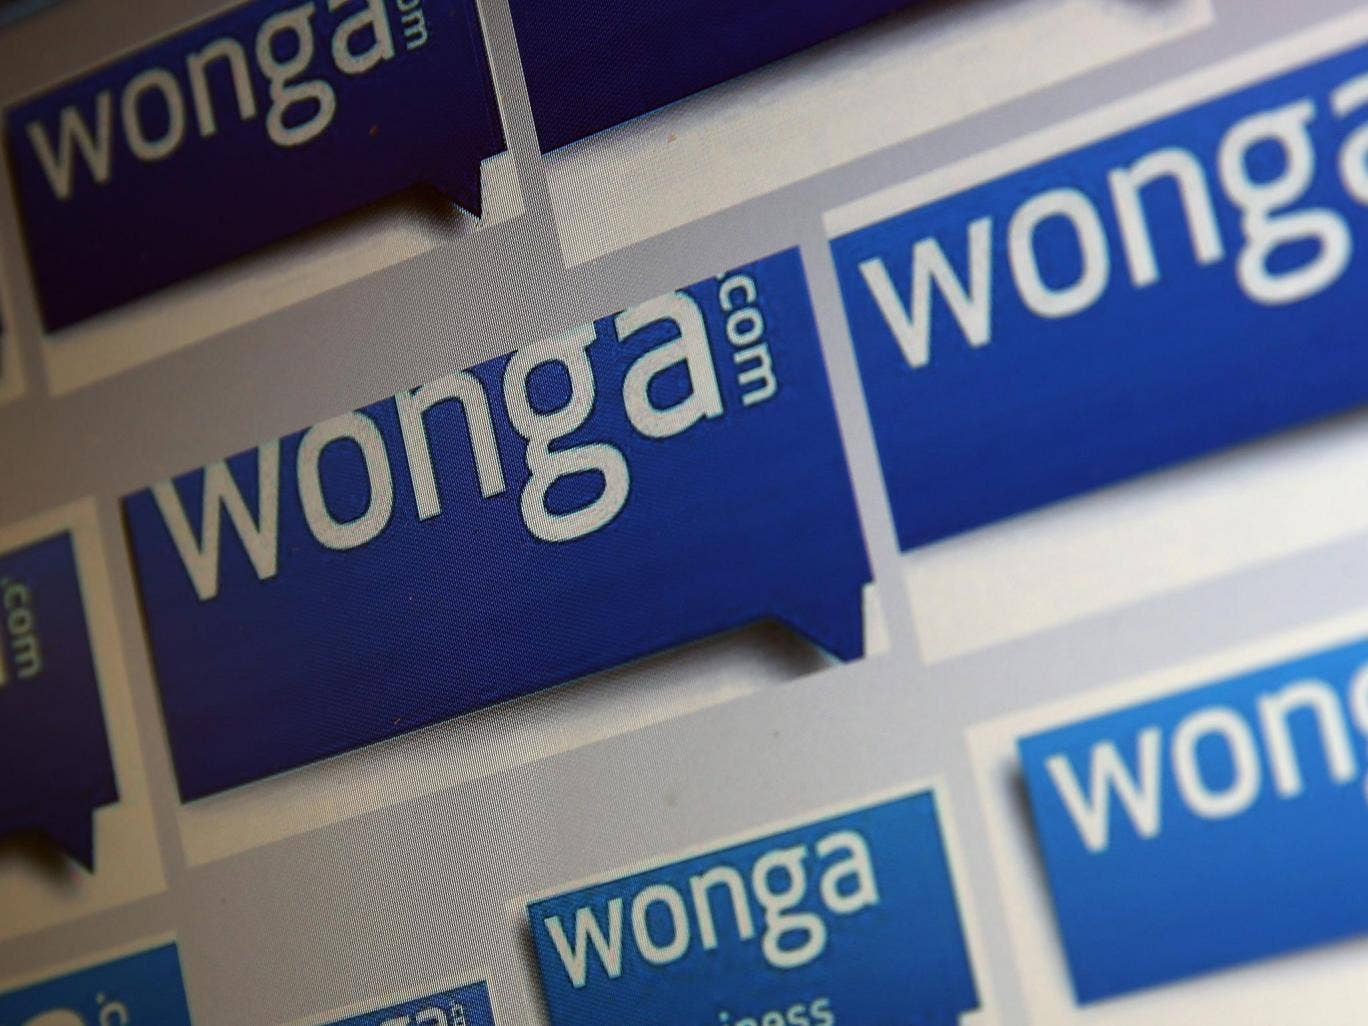 Wonga has often been criticised for charging its customers interest rates of up to thousands of per cent